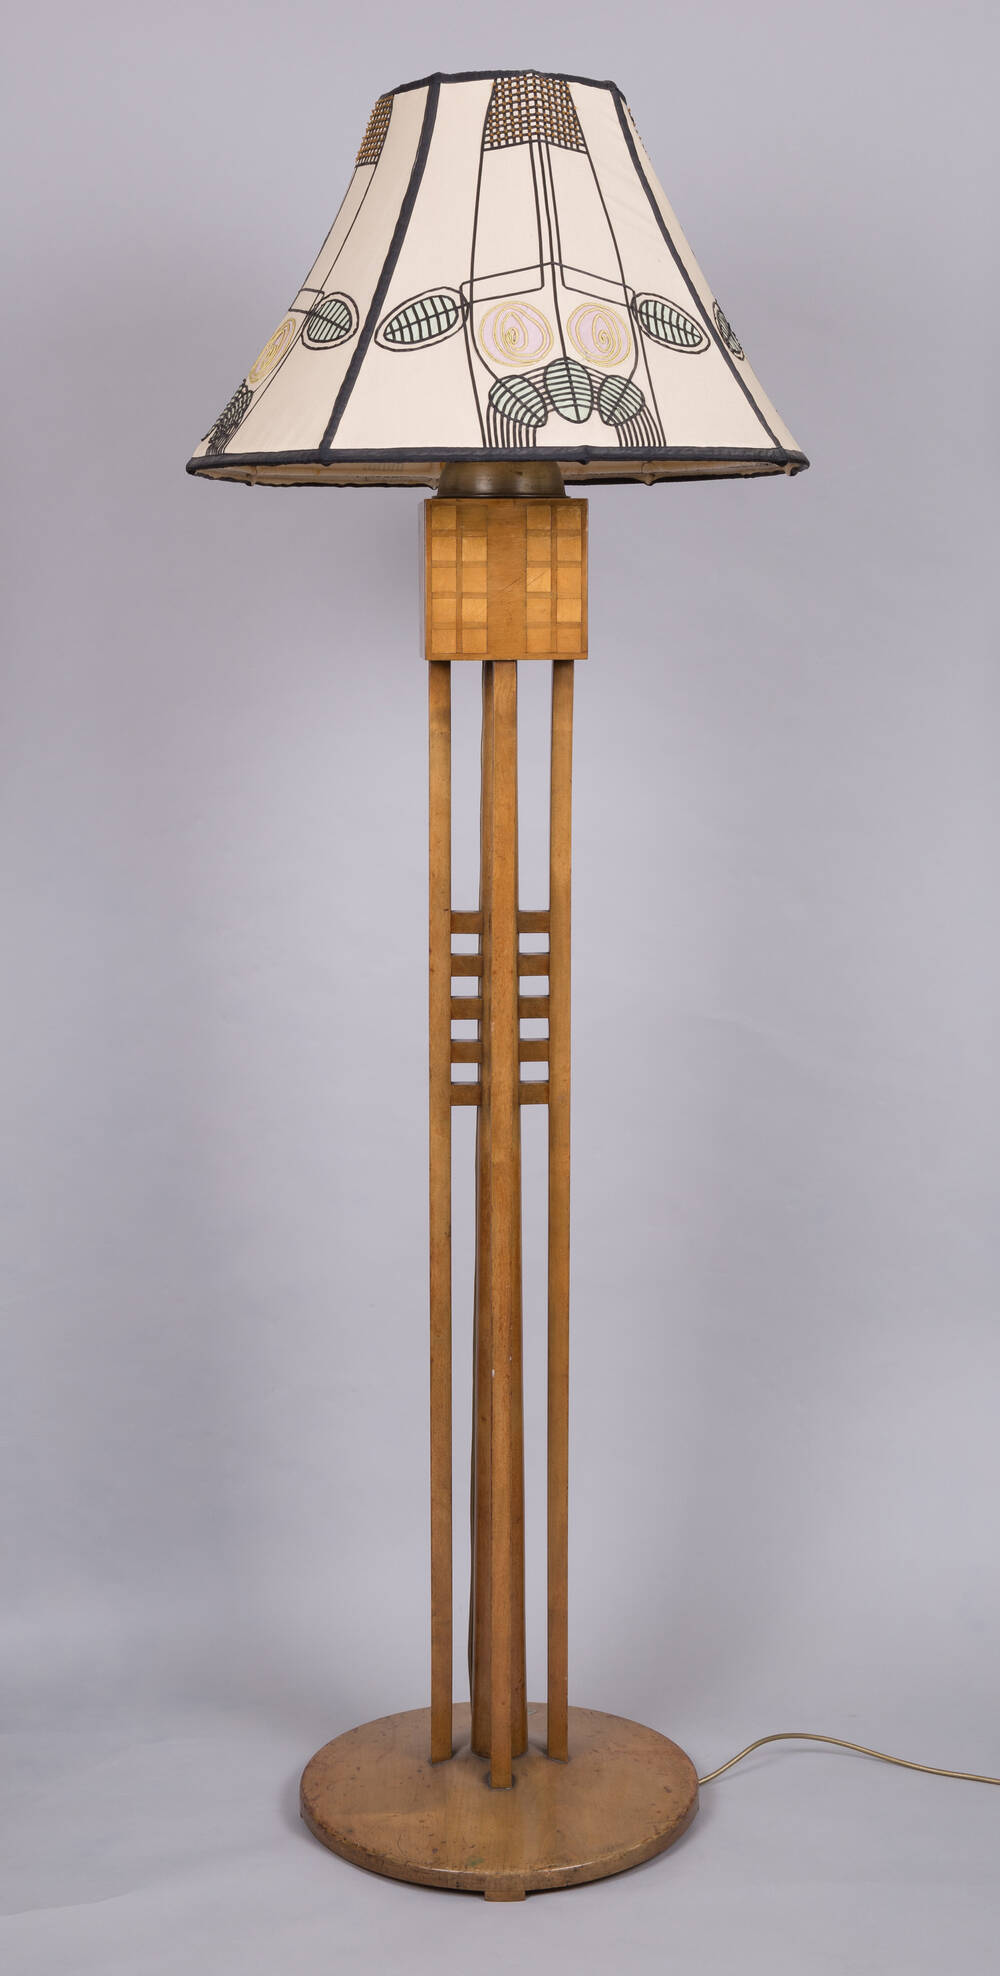 A standard lamp designed by Charles Rennie Mackintosh. It has a wooden stem, and the shade features the Mackintosh rose design.